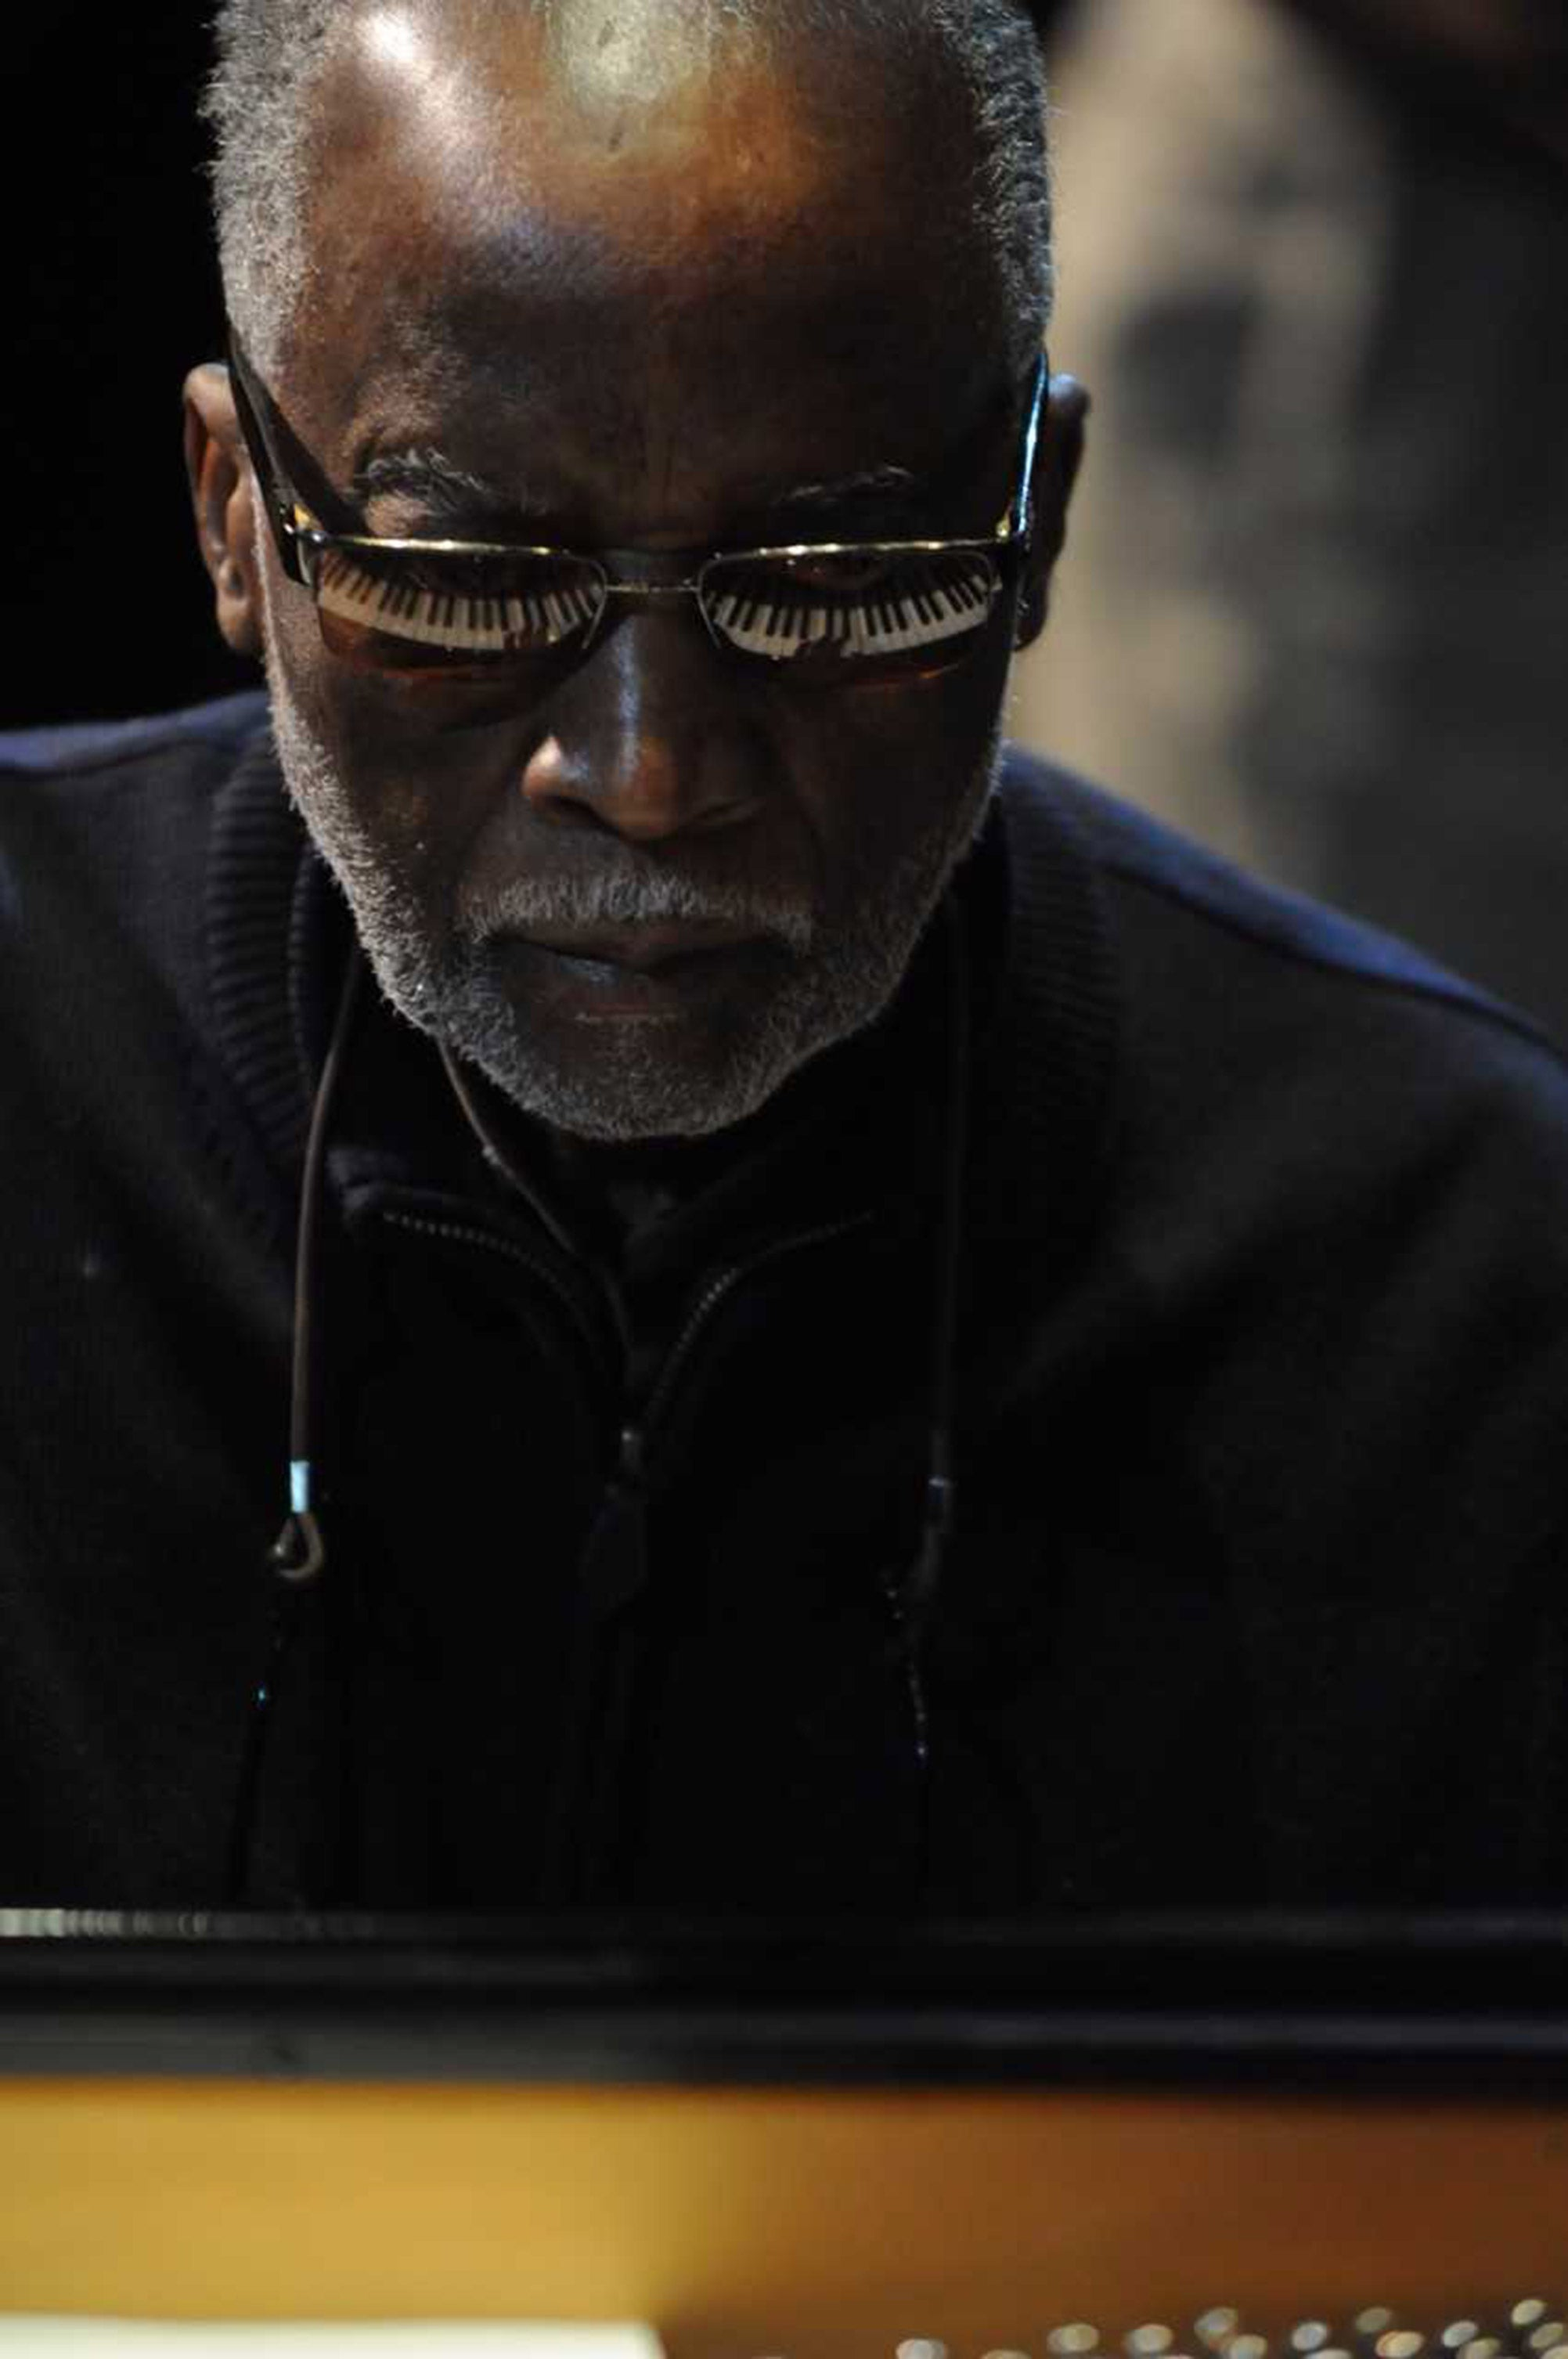 Ahmad Jamal, 2013 with piano keys reflected in glasses